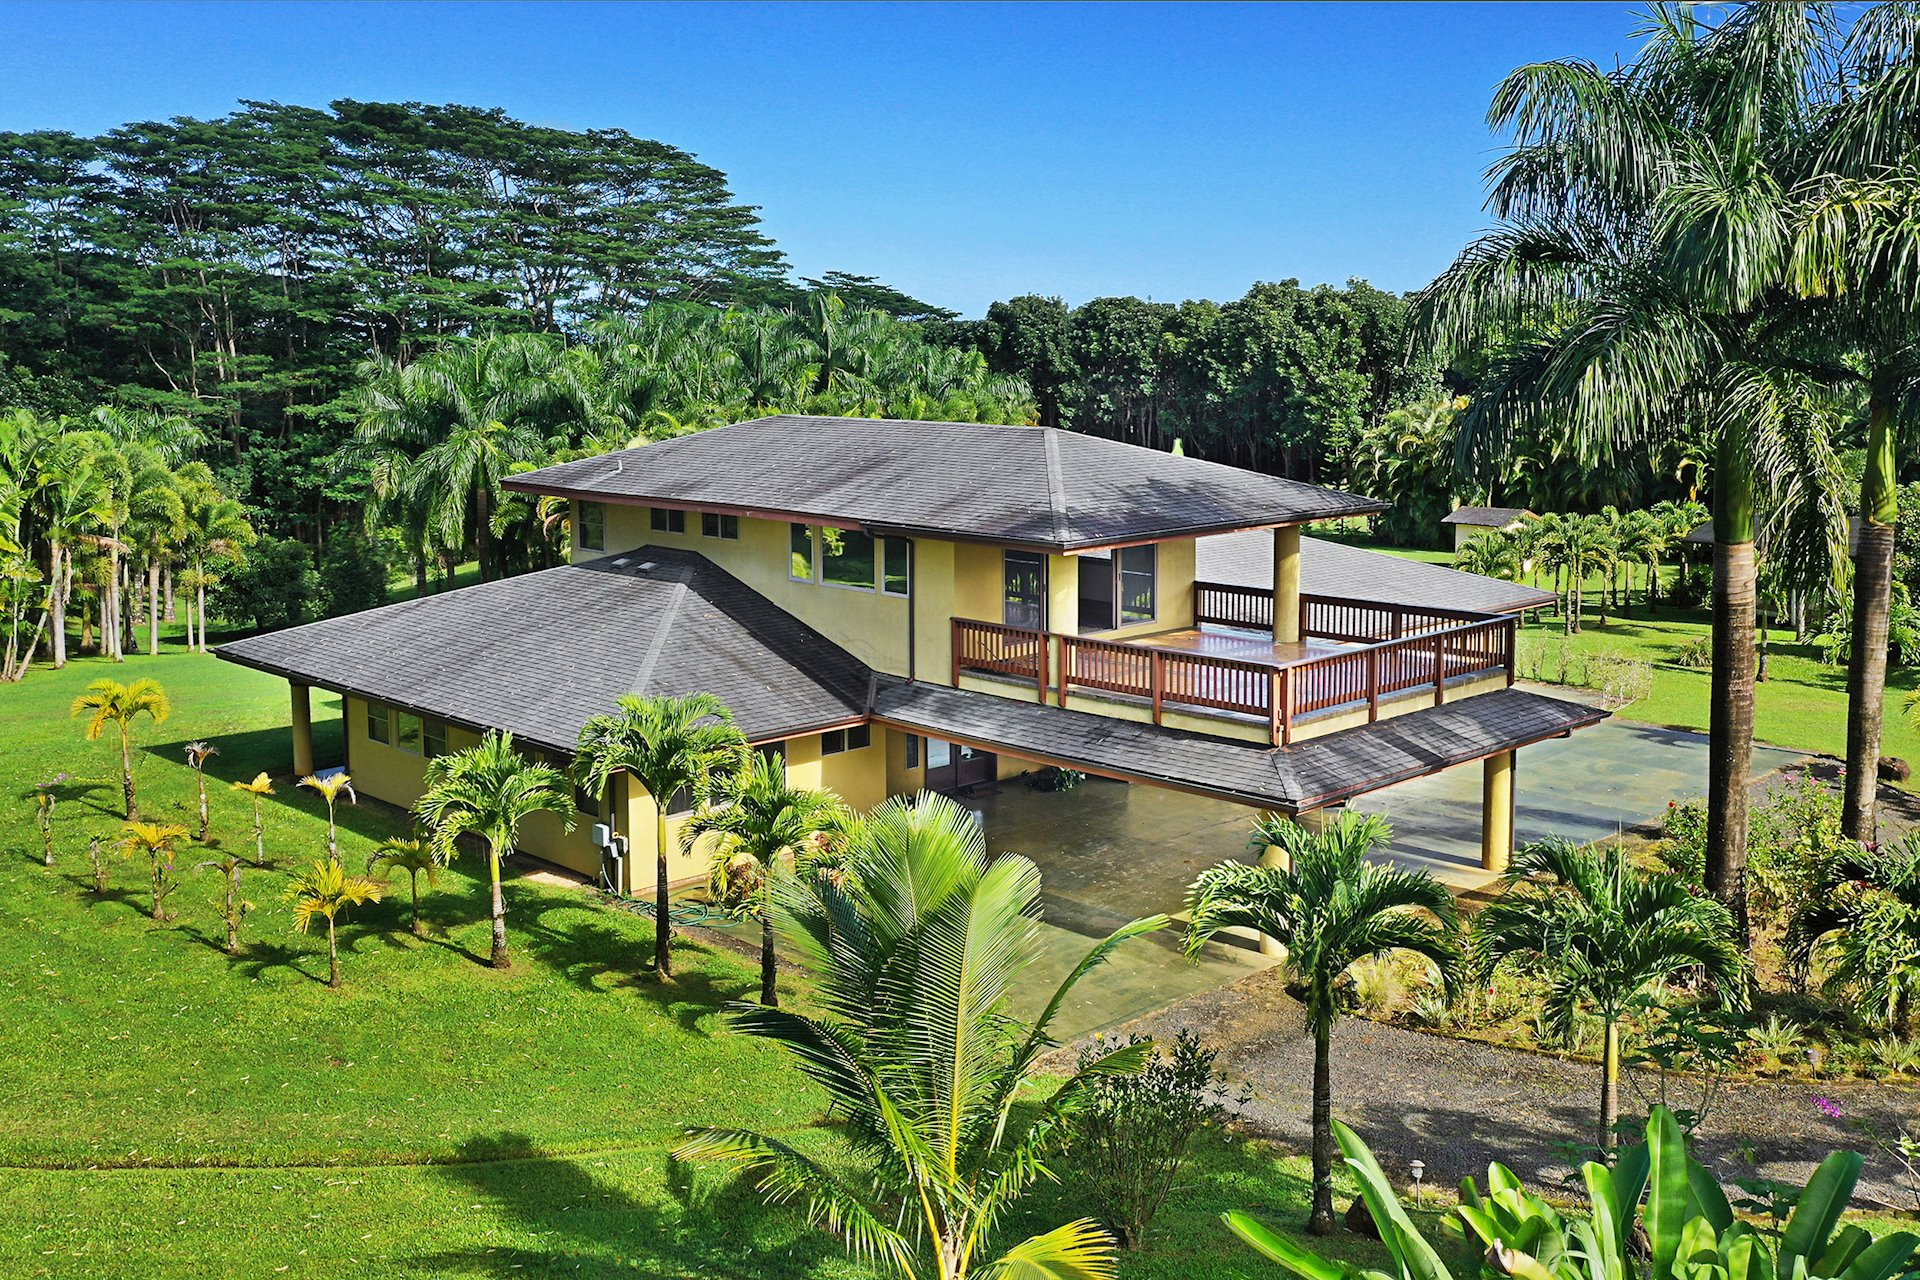 Kalihiwai Ridge Custom 3BD/3BA two story home (2446 sqft) on 5.5 acres zoned agricultural.   Built in 2006 designed with large open spaces, warm wood tones throughout, a chief's dream kitchen, and spacious living area opening to a large covered lanai surrounded with tropical landscaping providing the ultimate privacy from neighboring properties.  The master suite consists of the entire second floor exiting to a tiled deck over the port-de-chere framing the soaring Namahana mountain range.  Guest bedrooms and baths have their own wings off the main living area on the first floor.  Property has  horticulture areas including citrus, avocado trees, and commercial palm trees.  There is an area used in the past for hydroponic gardening.  Energy efficient with propane dryer, water heater, and stove plus most windows have been tinted.